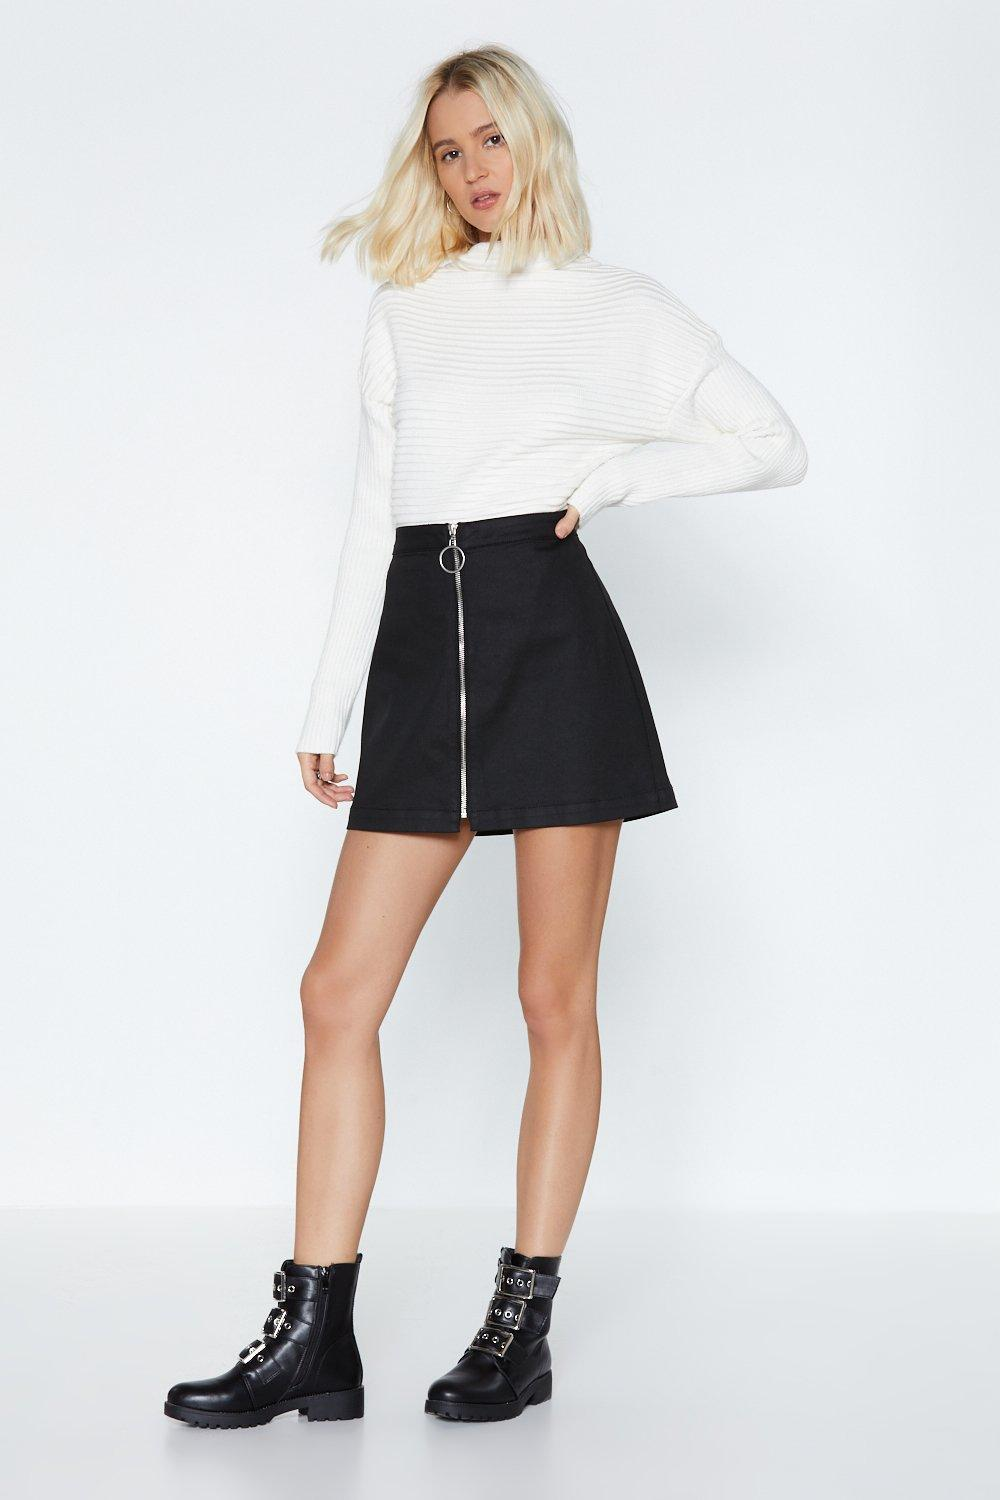 dfbc180d7a Hover to zoom · Womens Black Zip It Mini Skirt